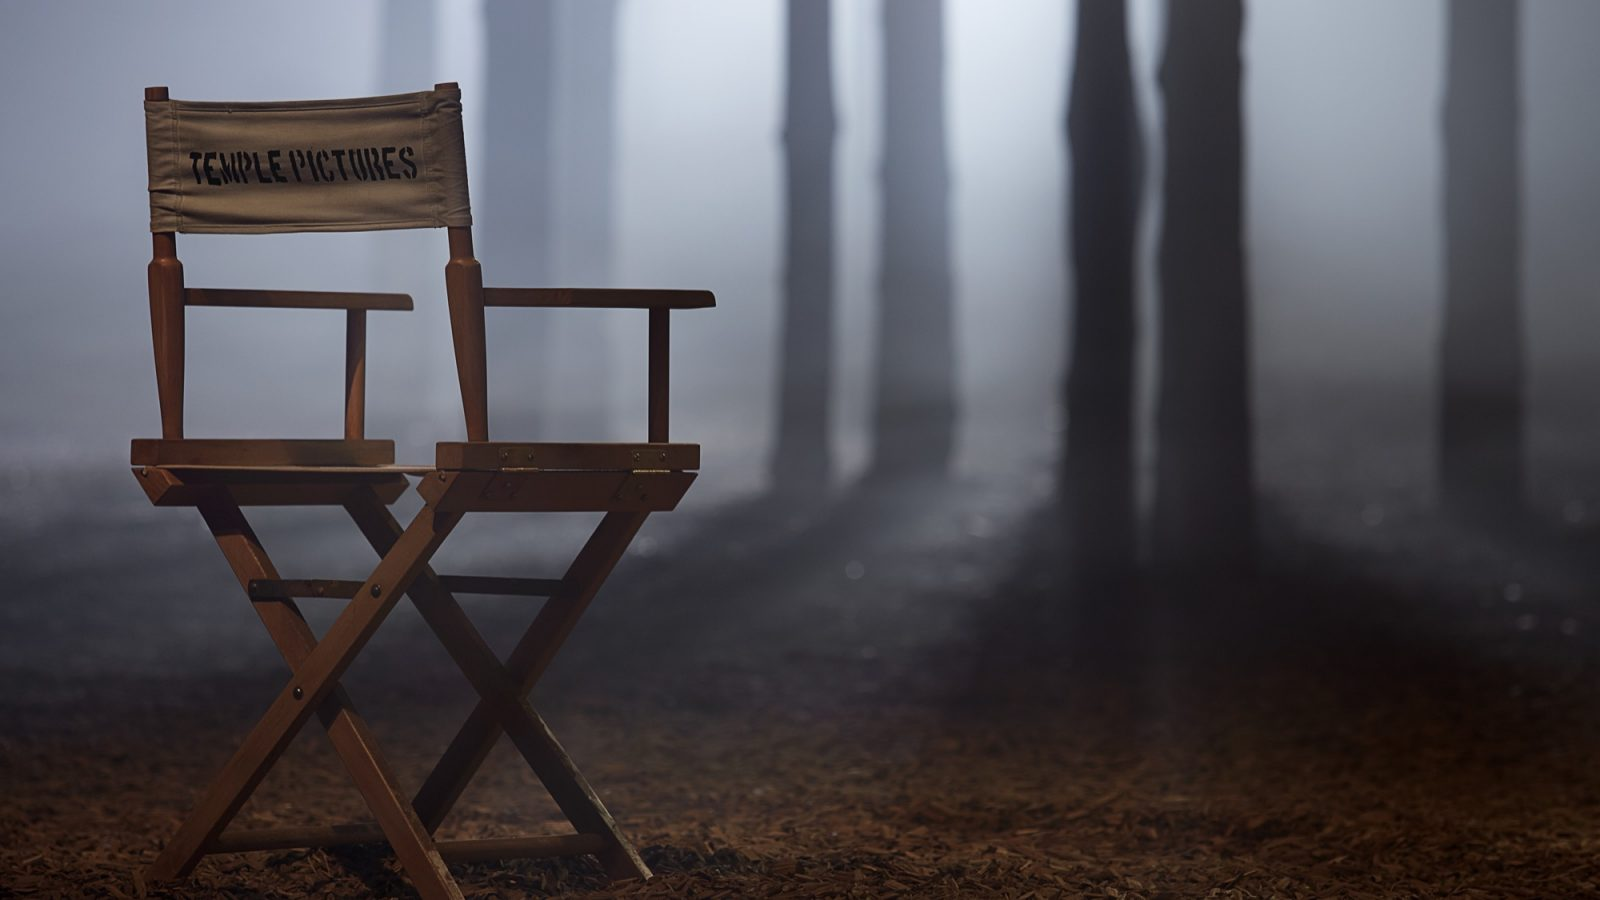 Empty directors chair with 'Temple Pictures' written on it. Located in a forest setting